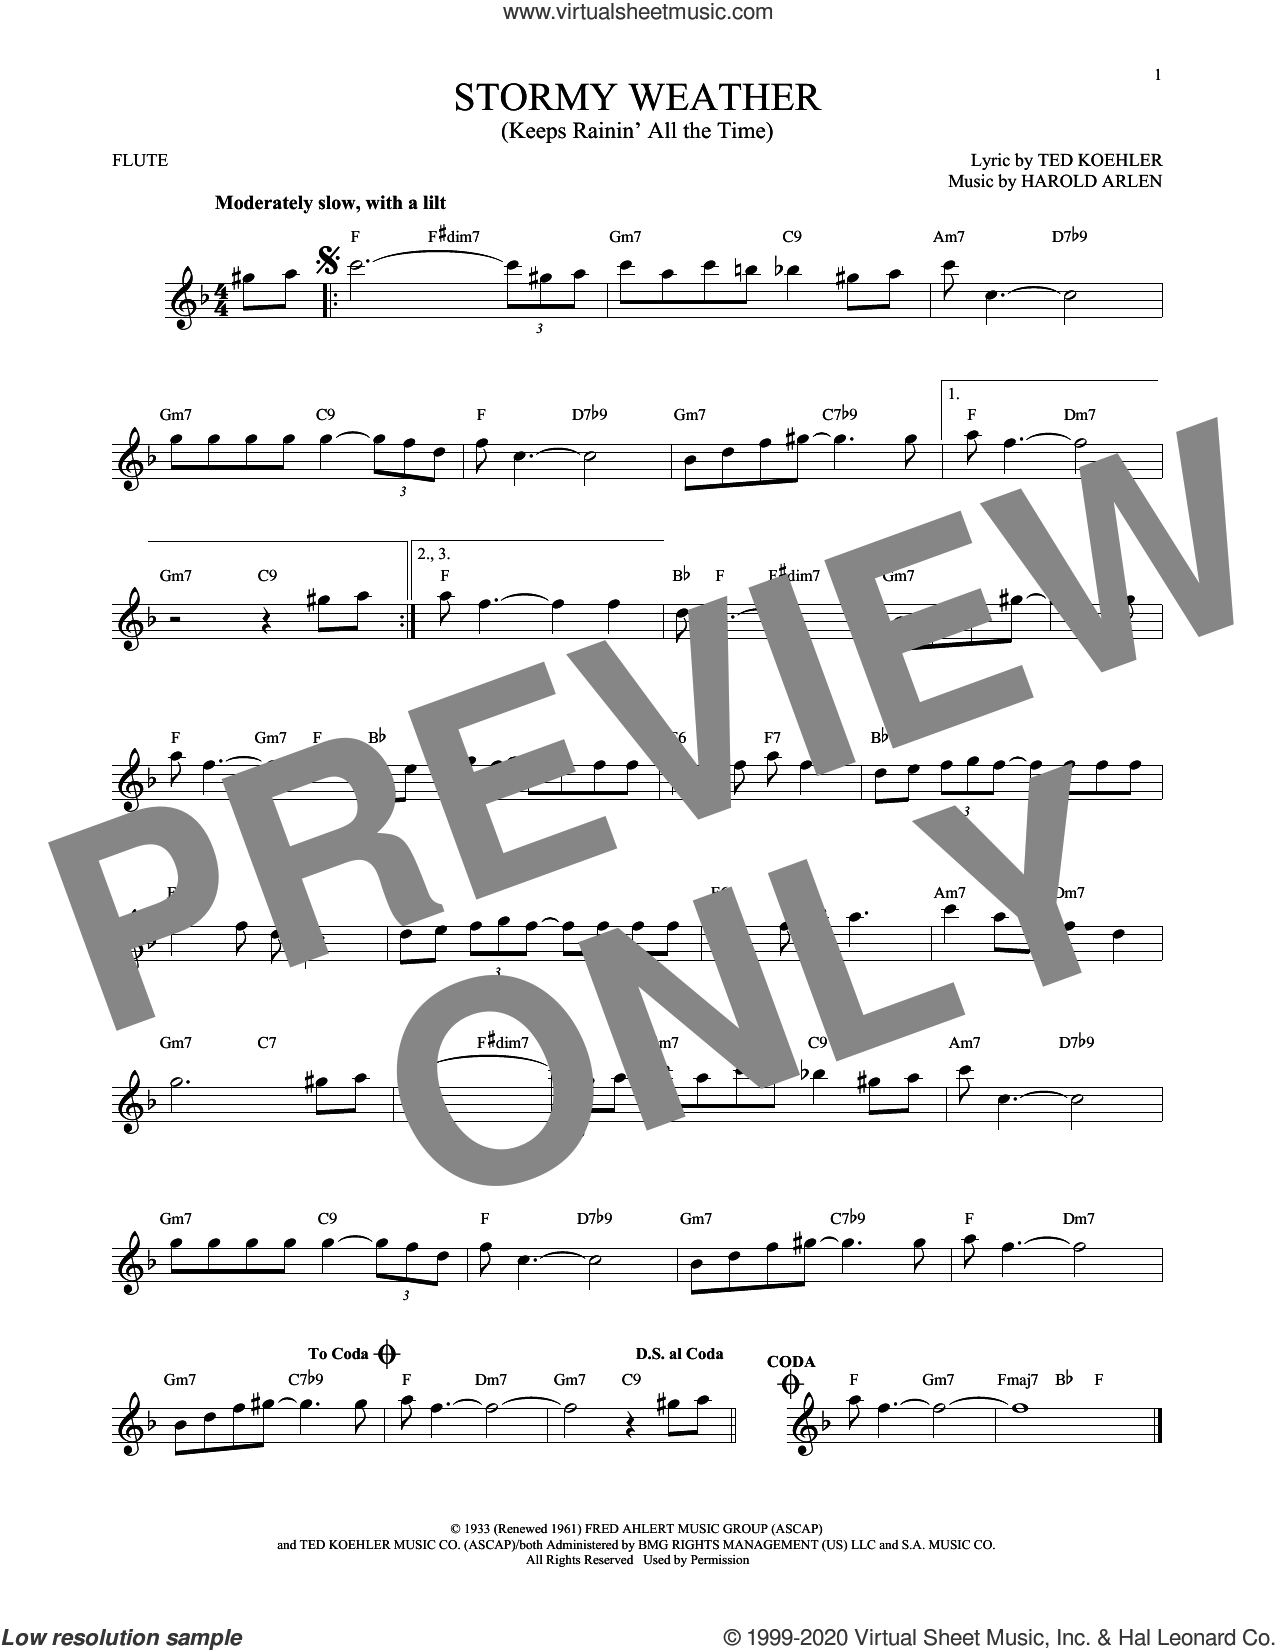 Stormy Weather (Keeps Rainin' All The Time) sheet music for flute solo by Harold Arlen and Ted Koehler, intermediate skill level